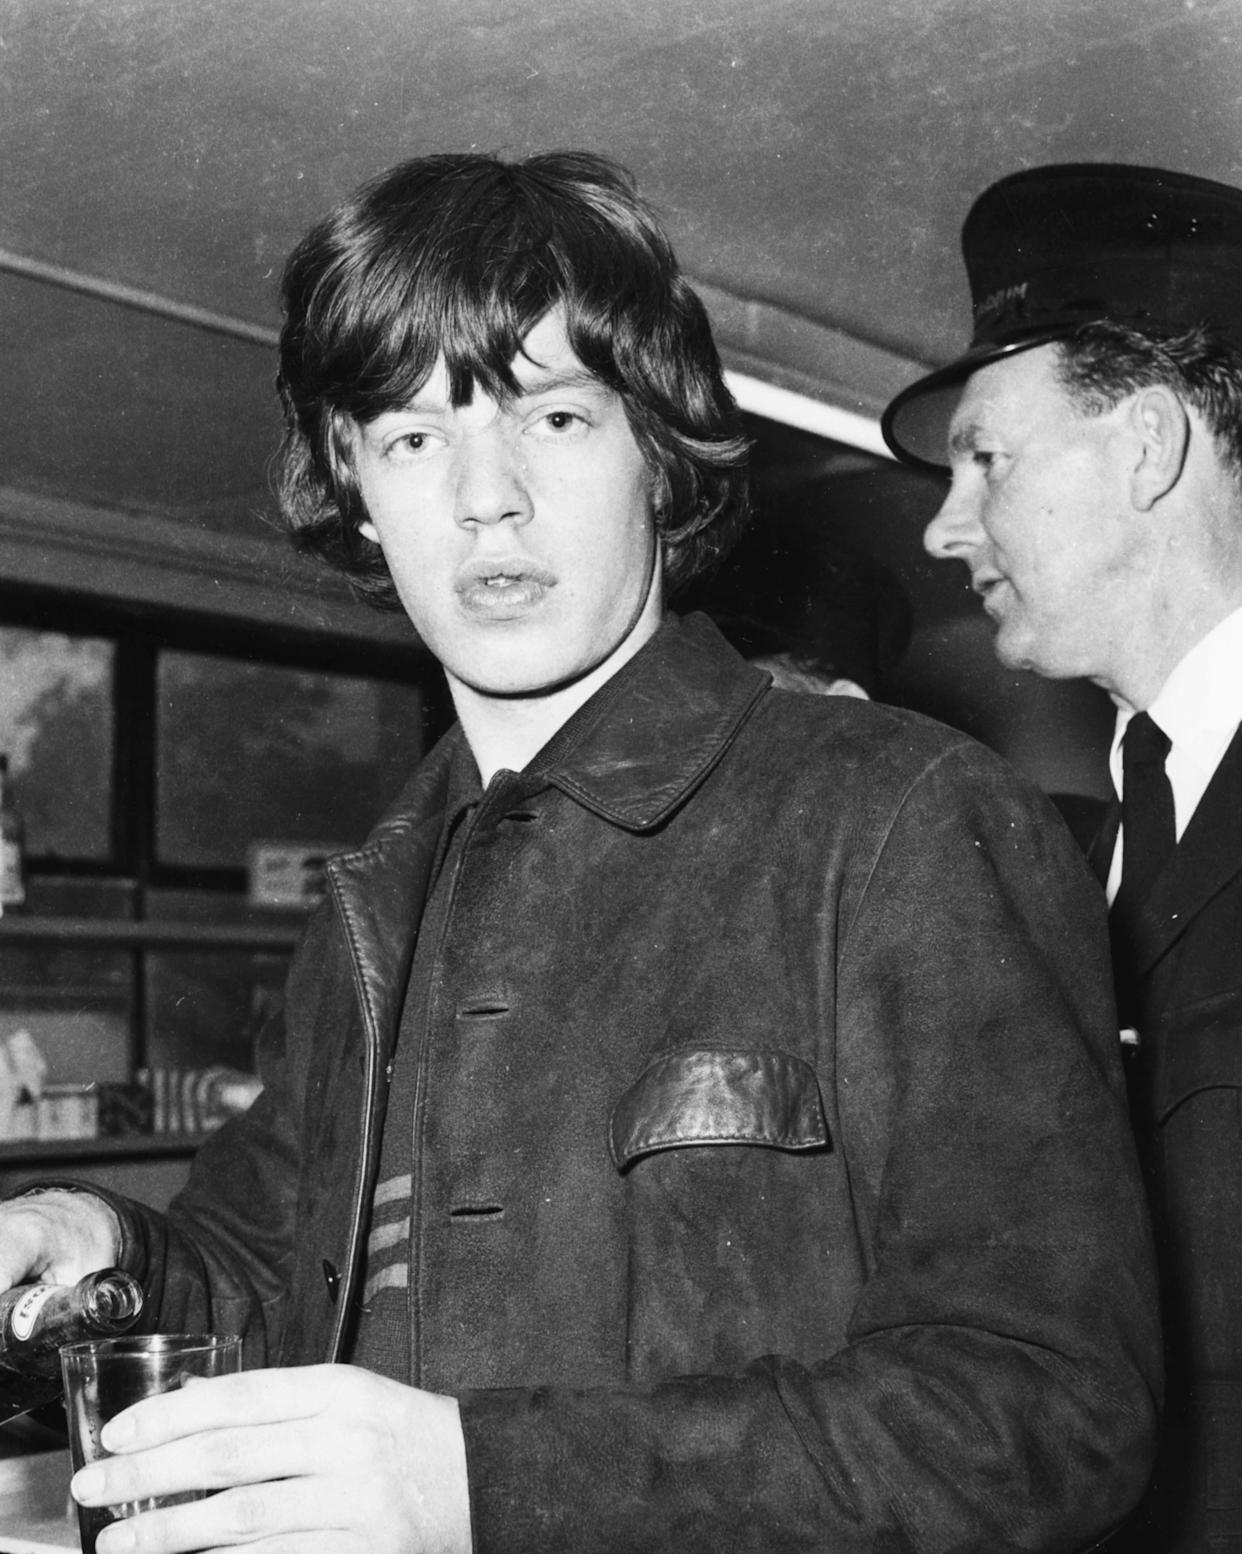 'The Rolling Stones' lead singer Mick Jagger pouring himself a drink, 1964. (Photo by Keystone Features/Hulton Archive/Getty Images)